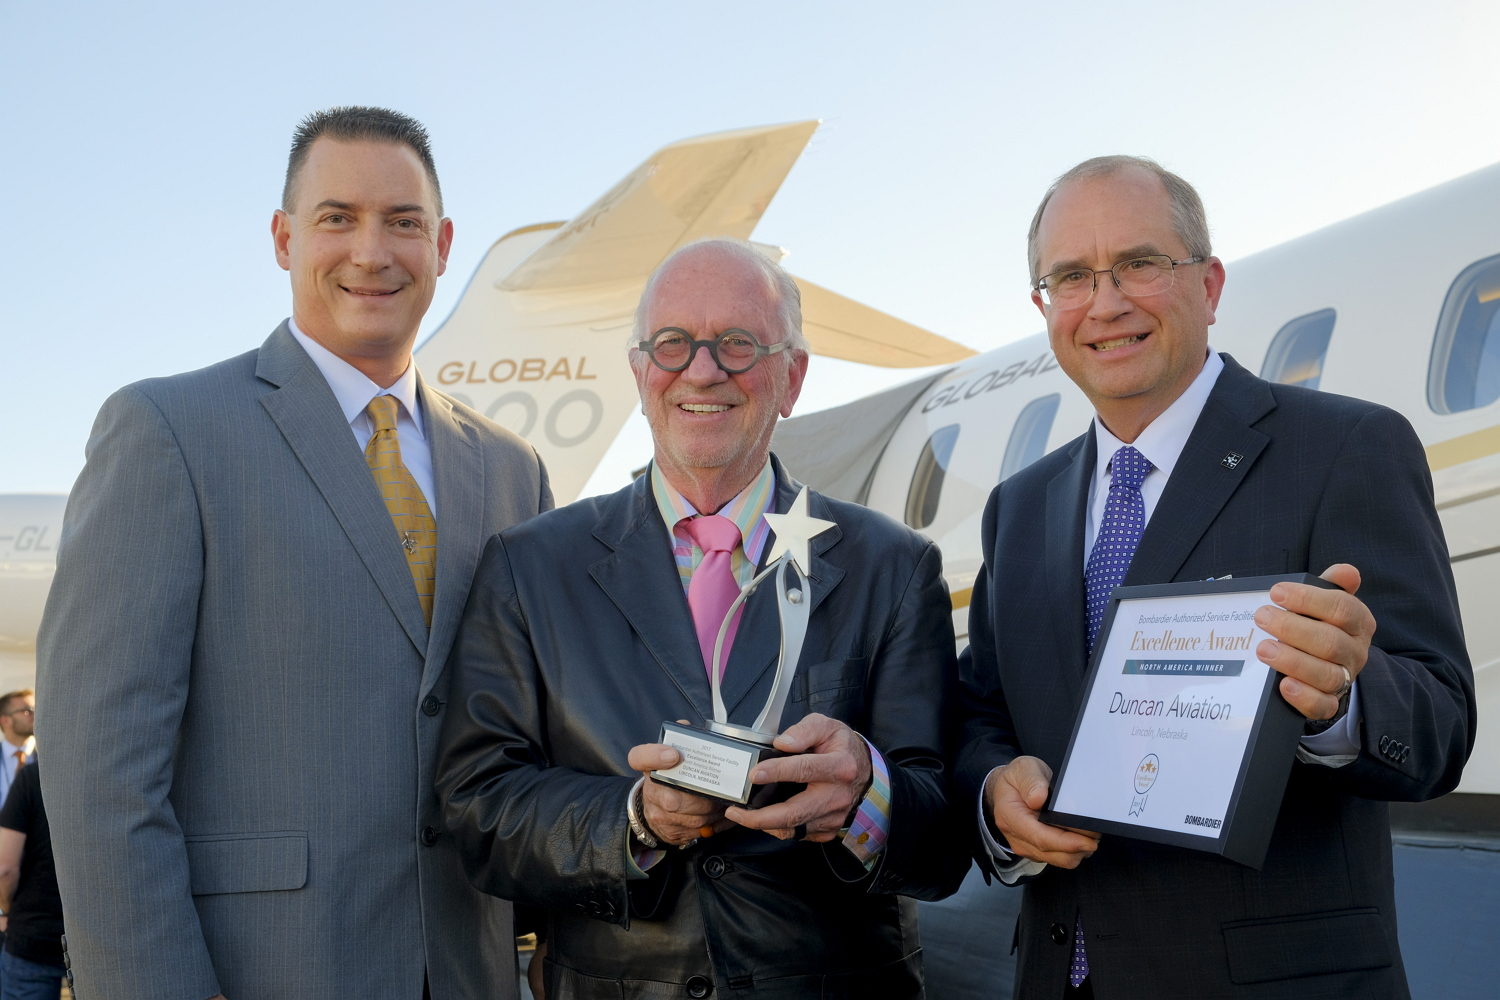 Duncan Aviation Bombardier Award at NBAA